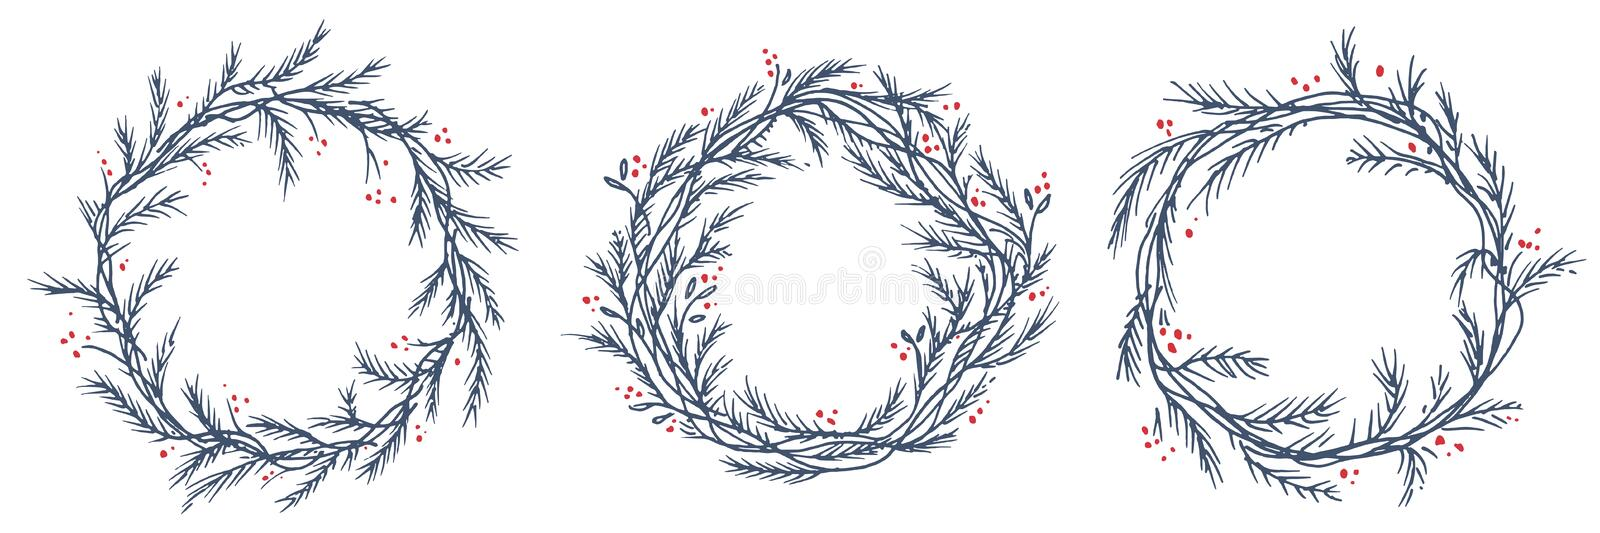 Vector set of silhouette christmas wreath frames royalty free illustration